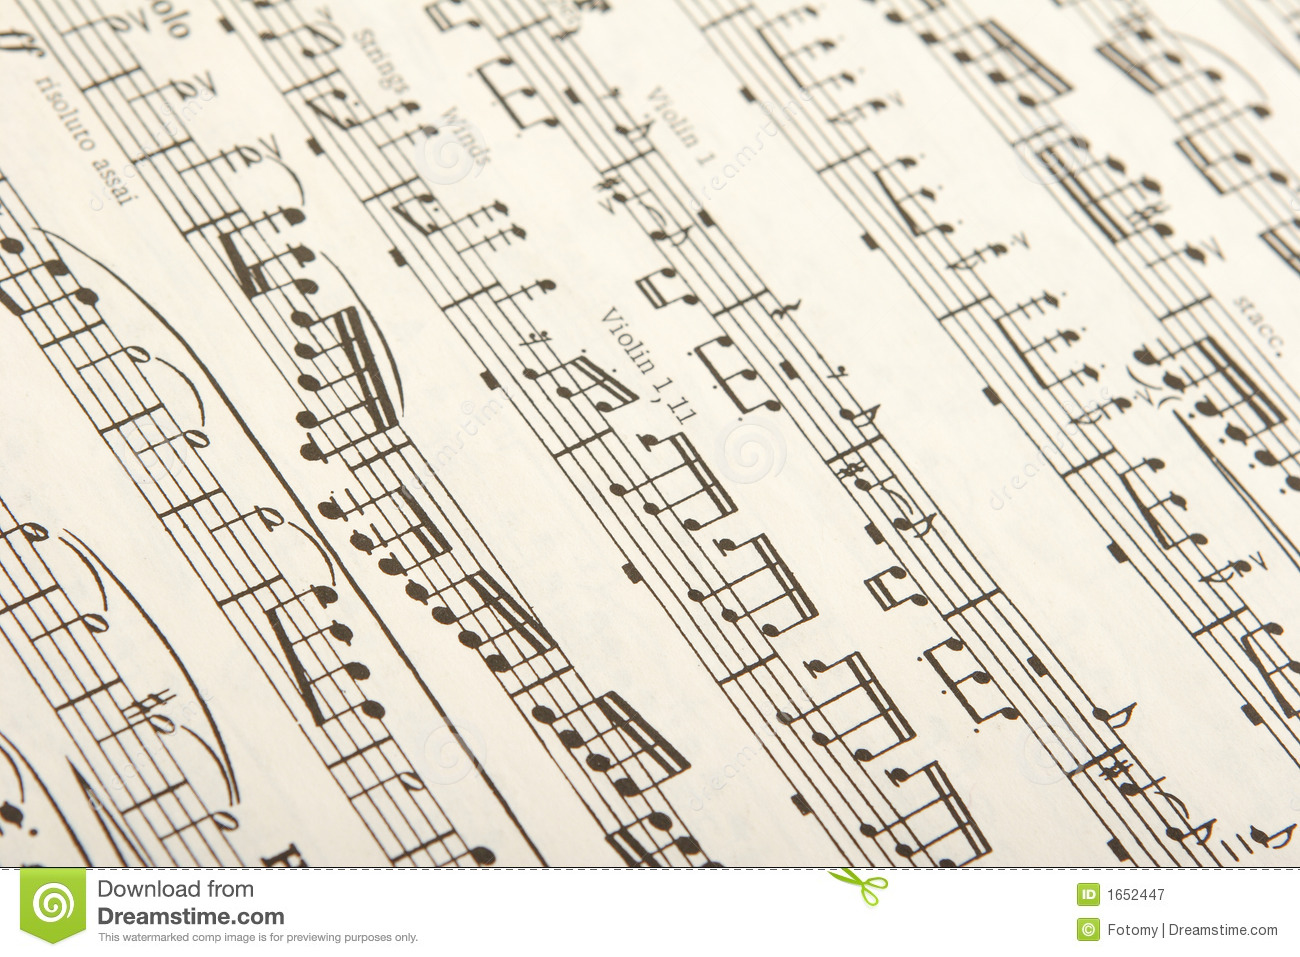 Classical sheet music stock image  Image of jazz, melody